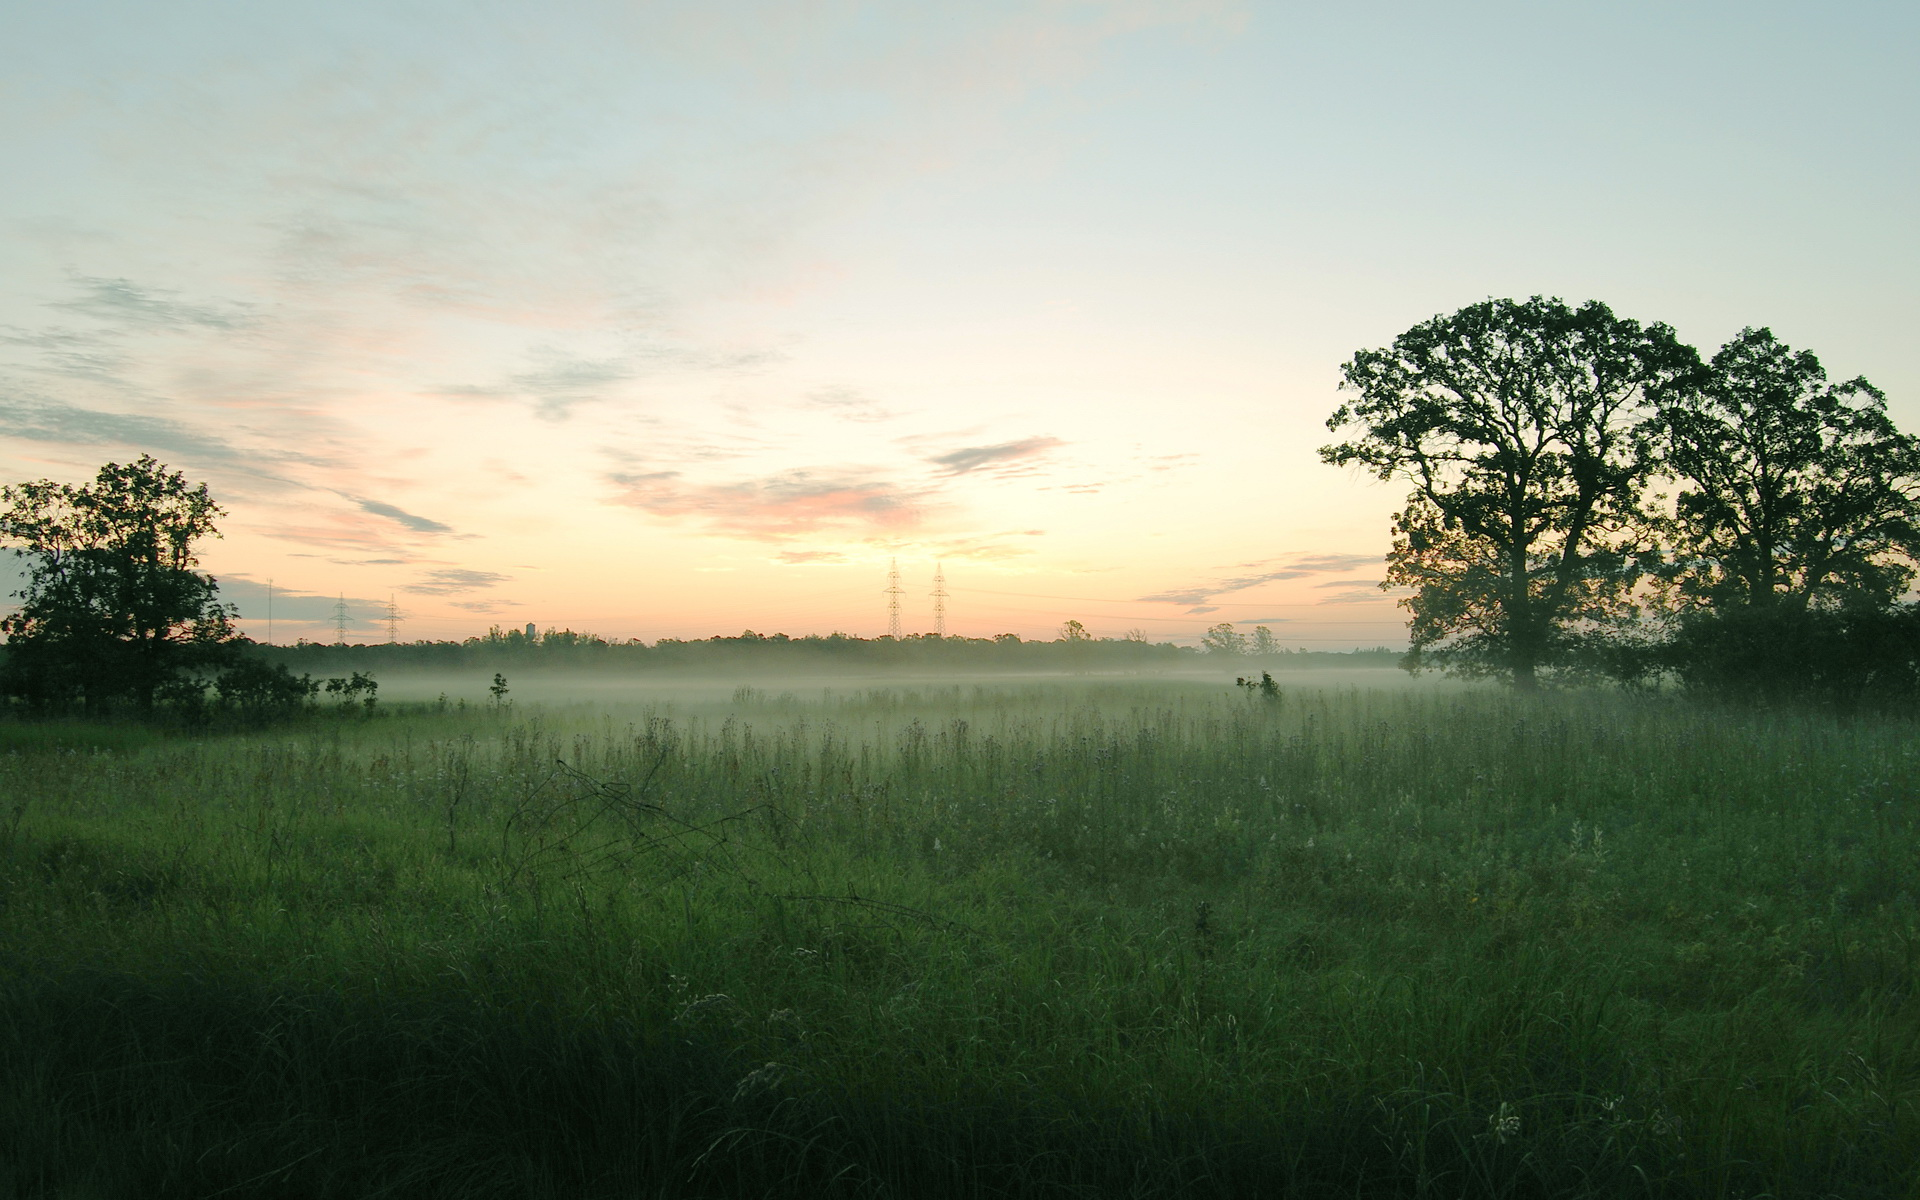 Morning fog / 1920 x 1200 / Sunriseandsunset / Photography ...